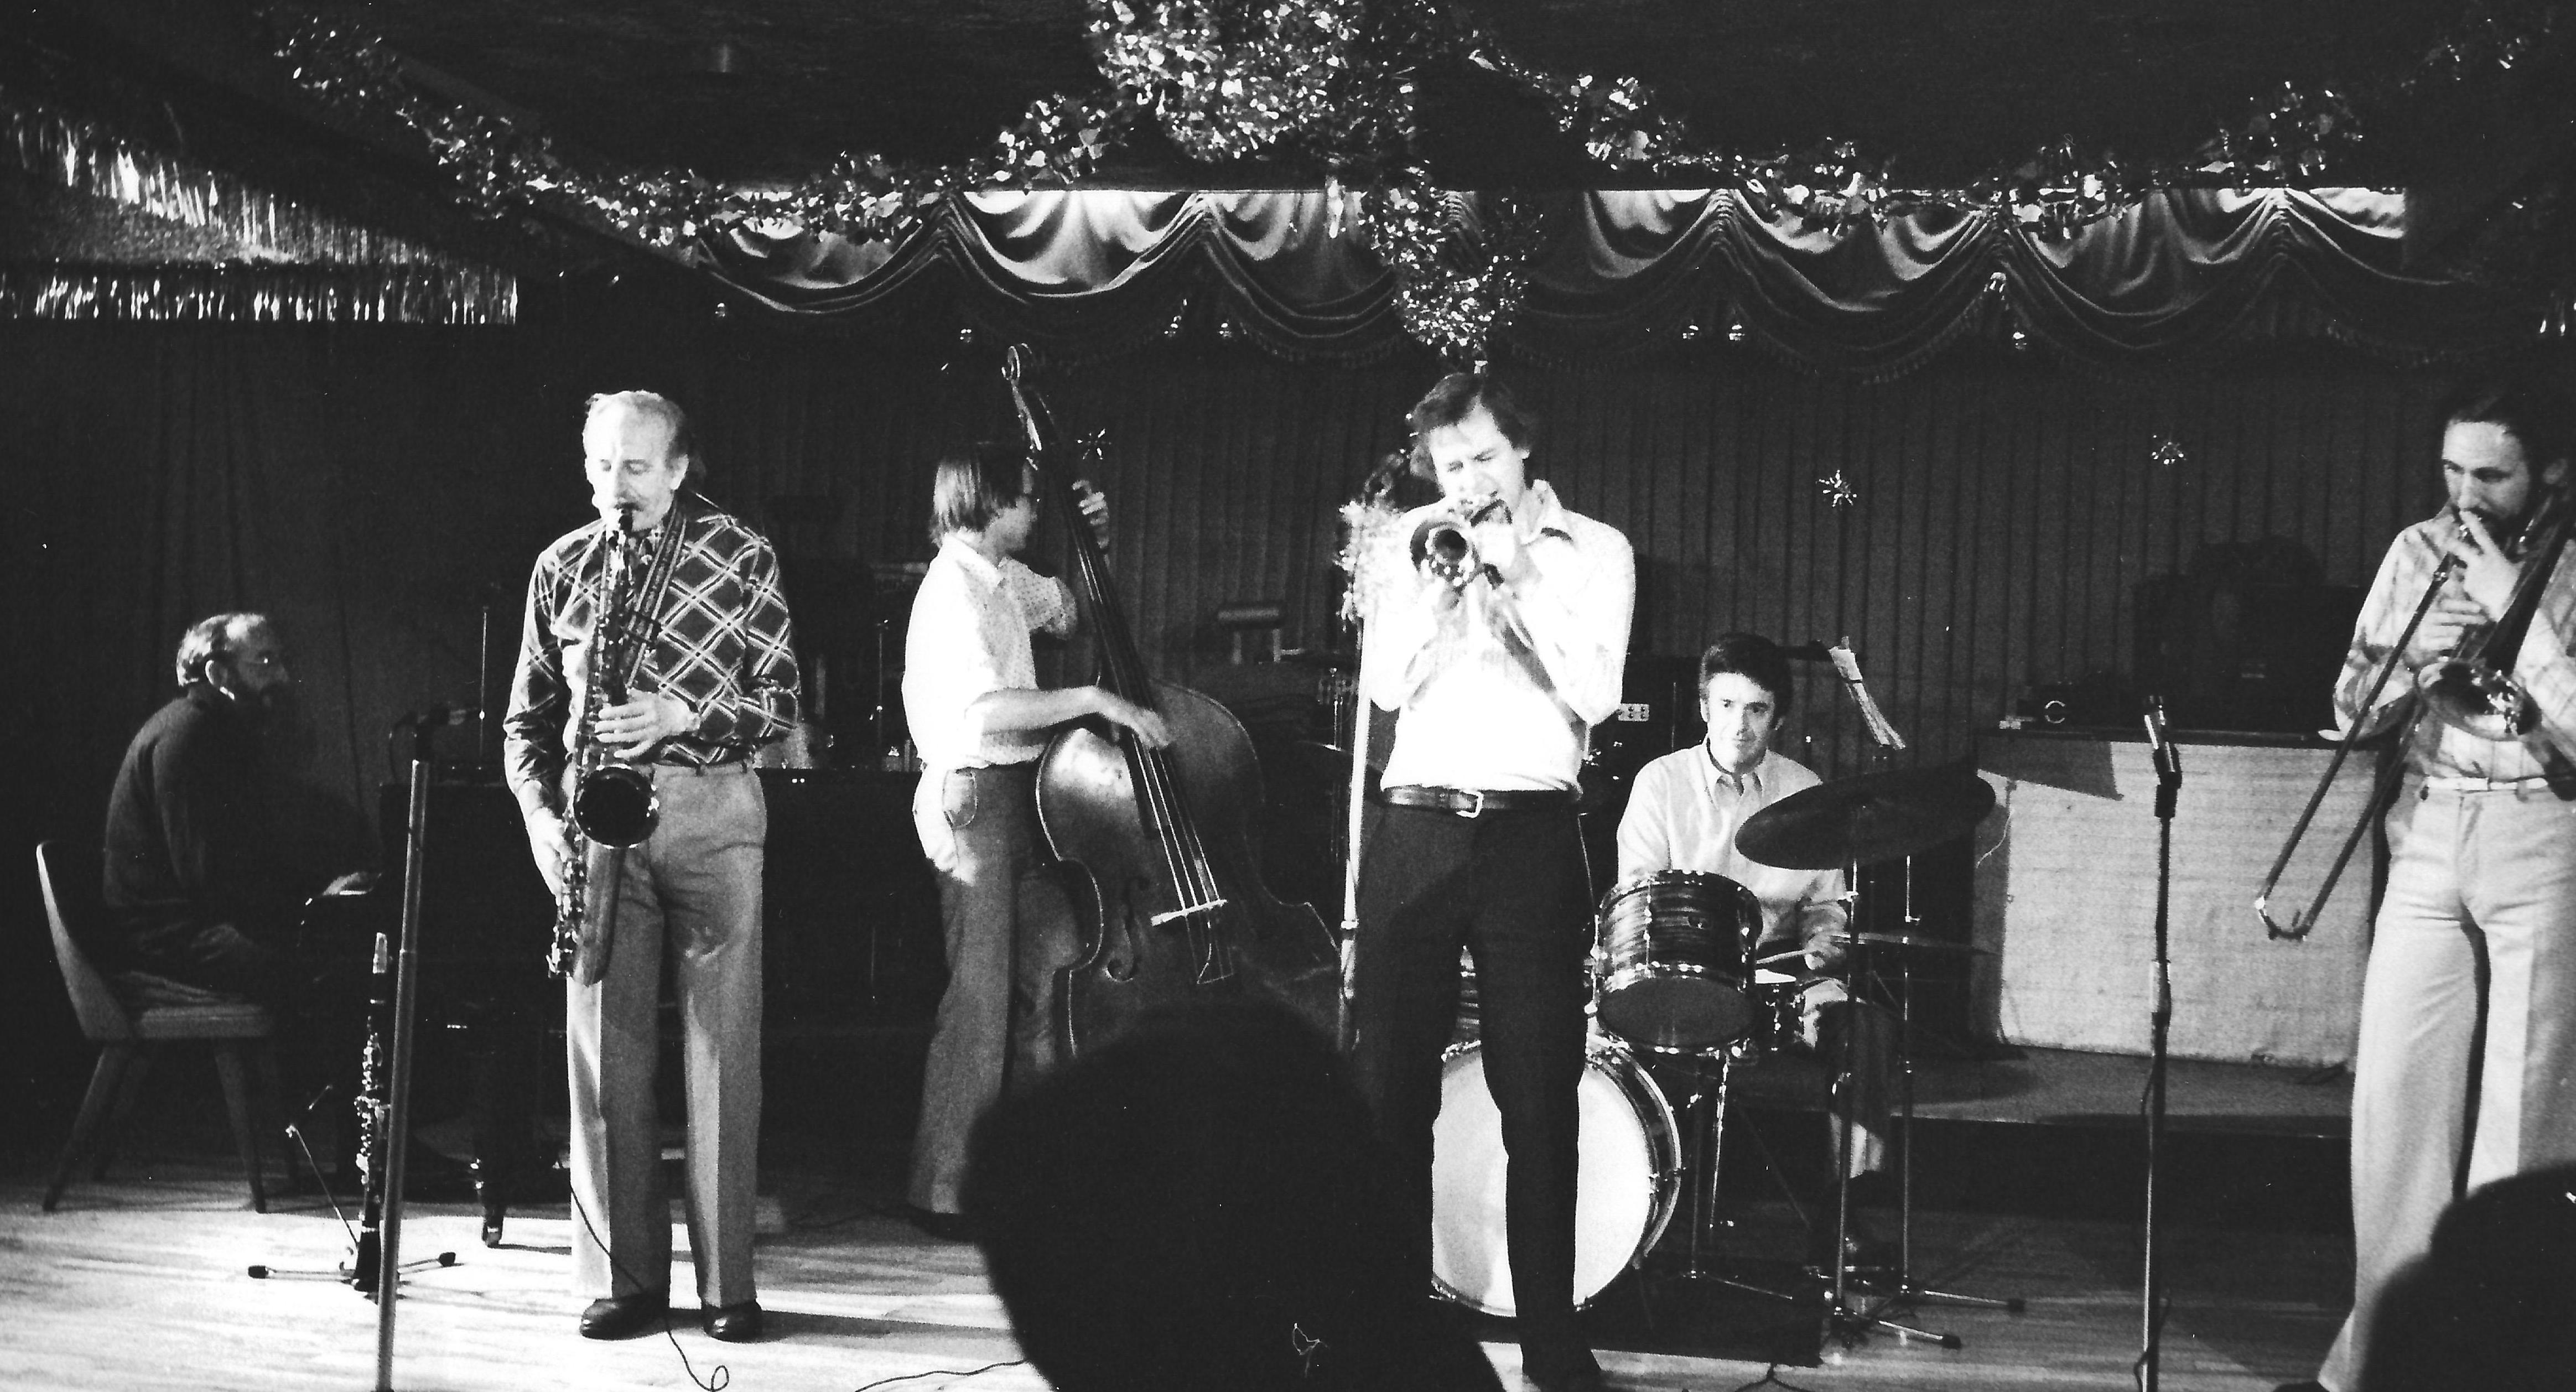 Chris Hodgkins And His Band 5th December 1977 Titos Club Cardiff